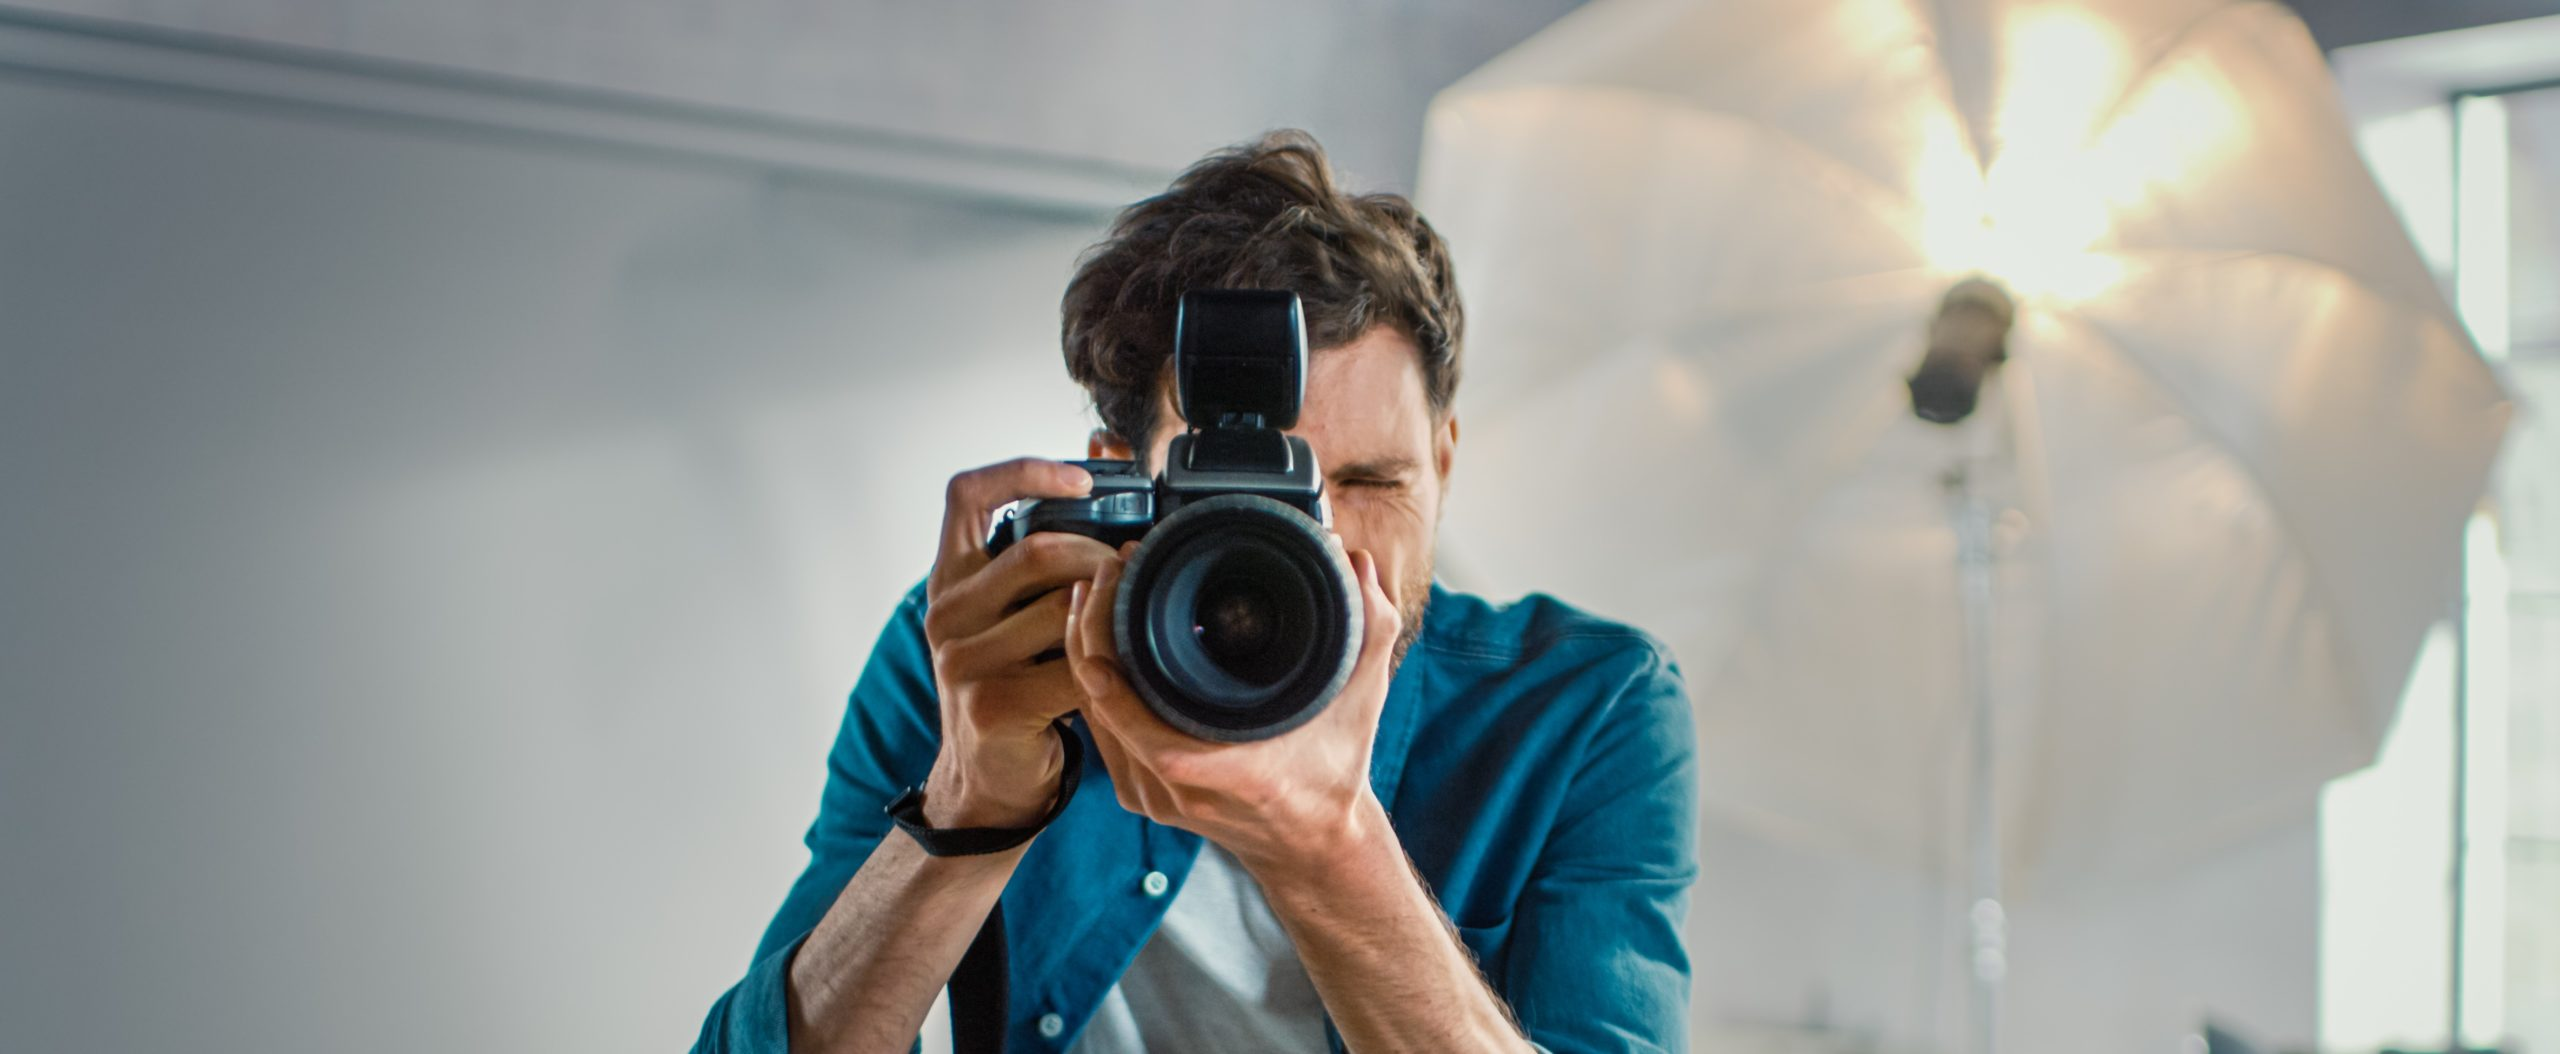 man with camera in the photo studio